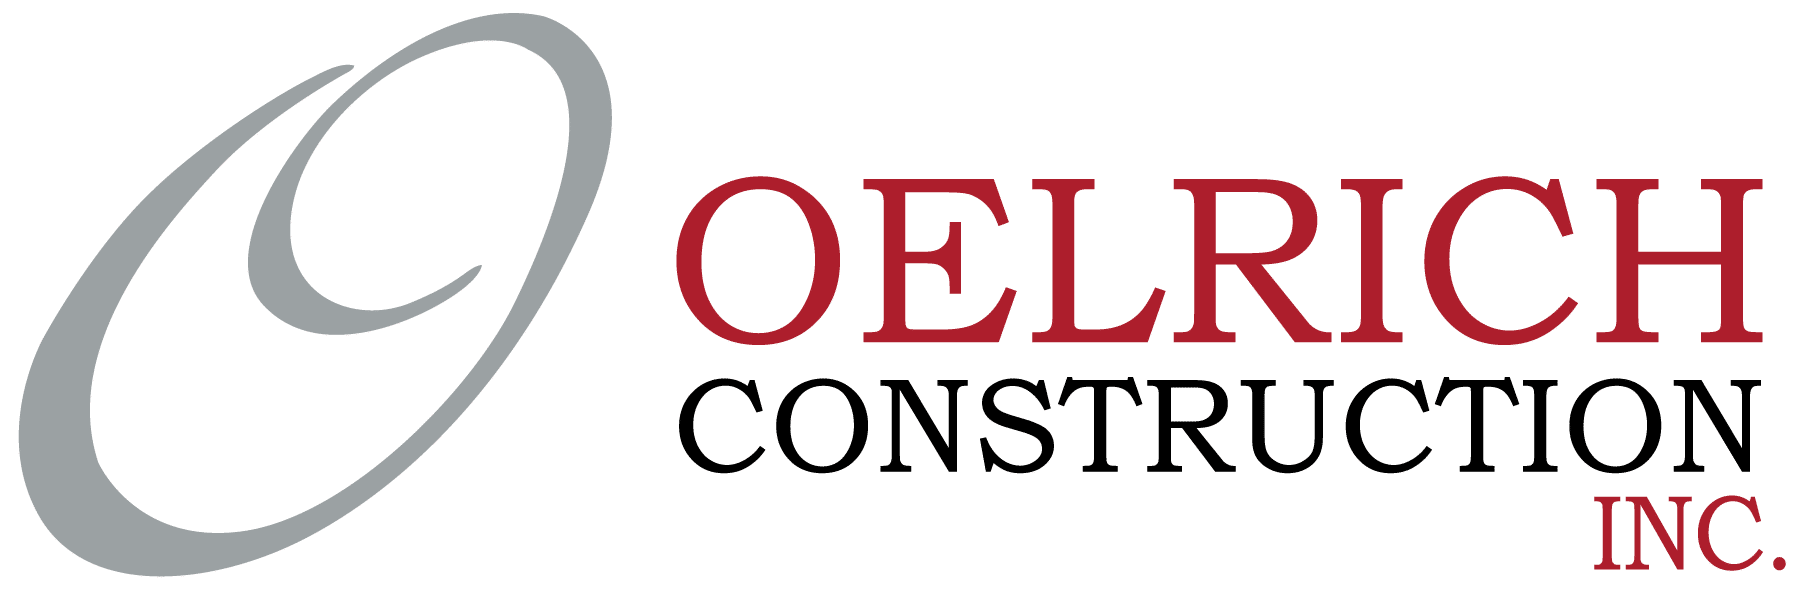 Oelrich Construction